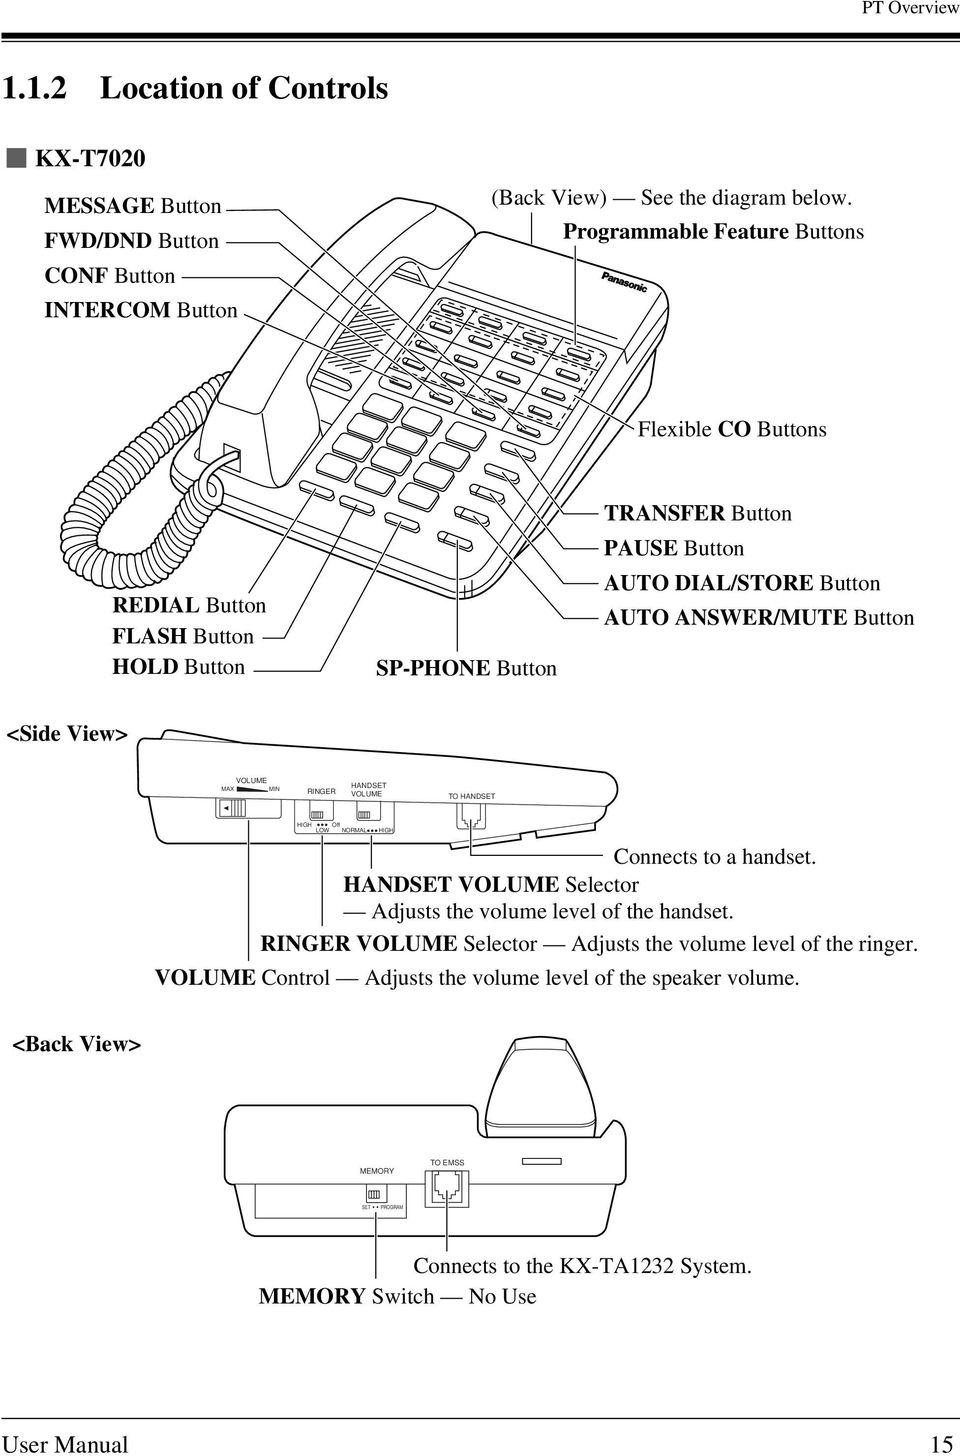 <Side View> MAX VOLUME MIN RINGER HANDSET VOLUME TO HANDSET HIGH Off LOW NORMAL HIGH Connects to a handset. HANDSET VOLUME Selector Adjusts the volume level of the handset.